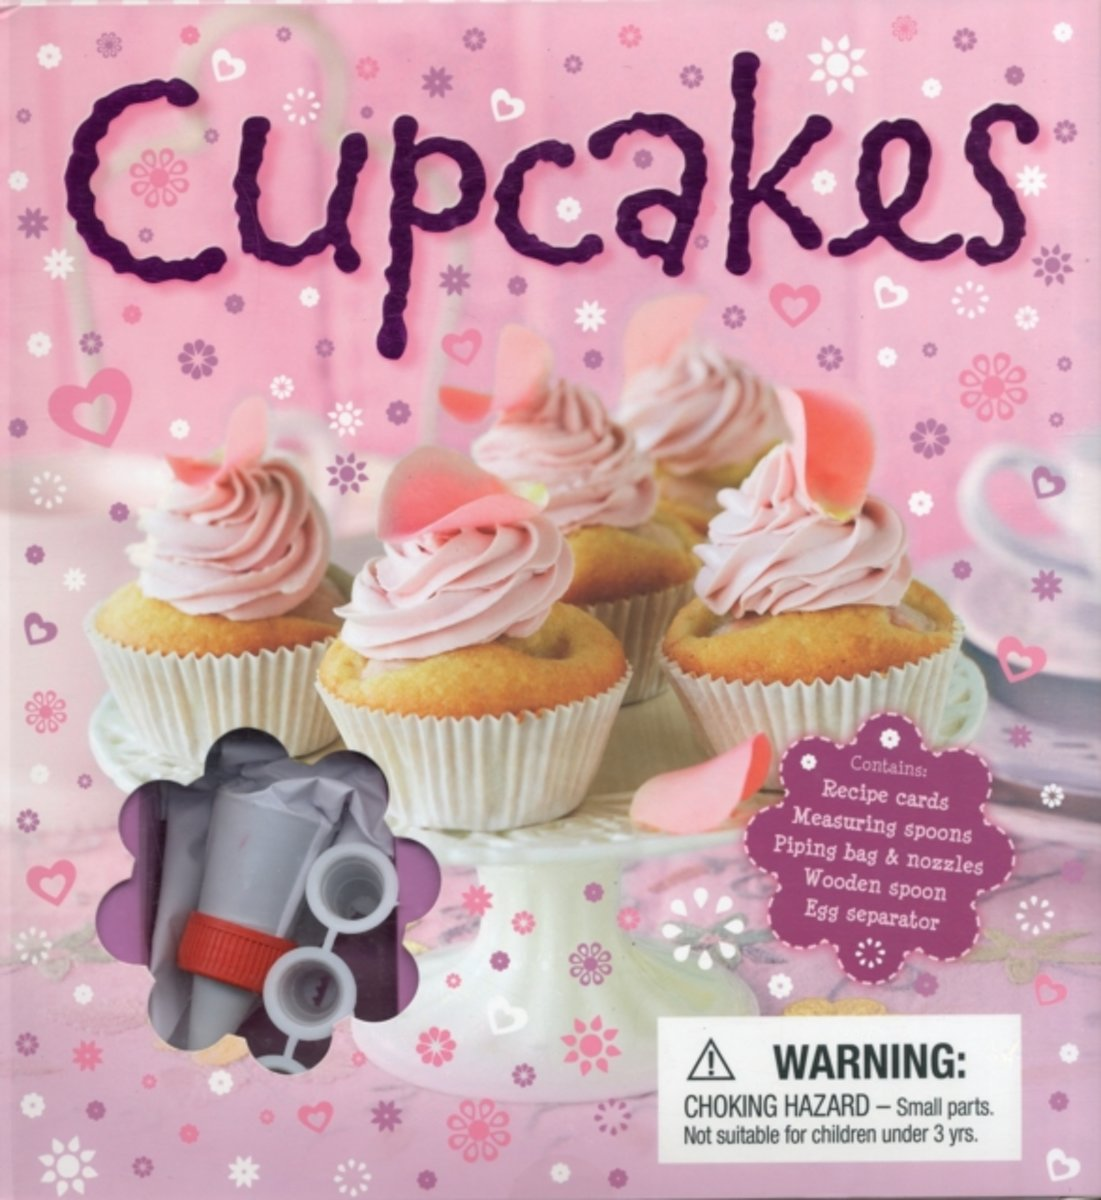 Cupcakes and Baking